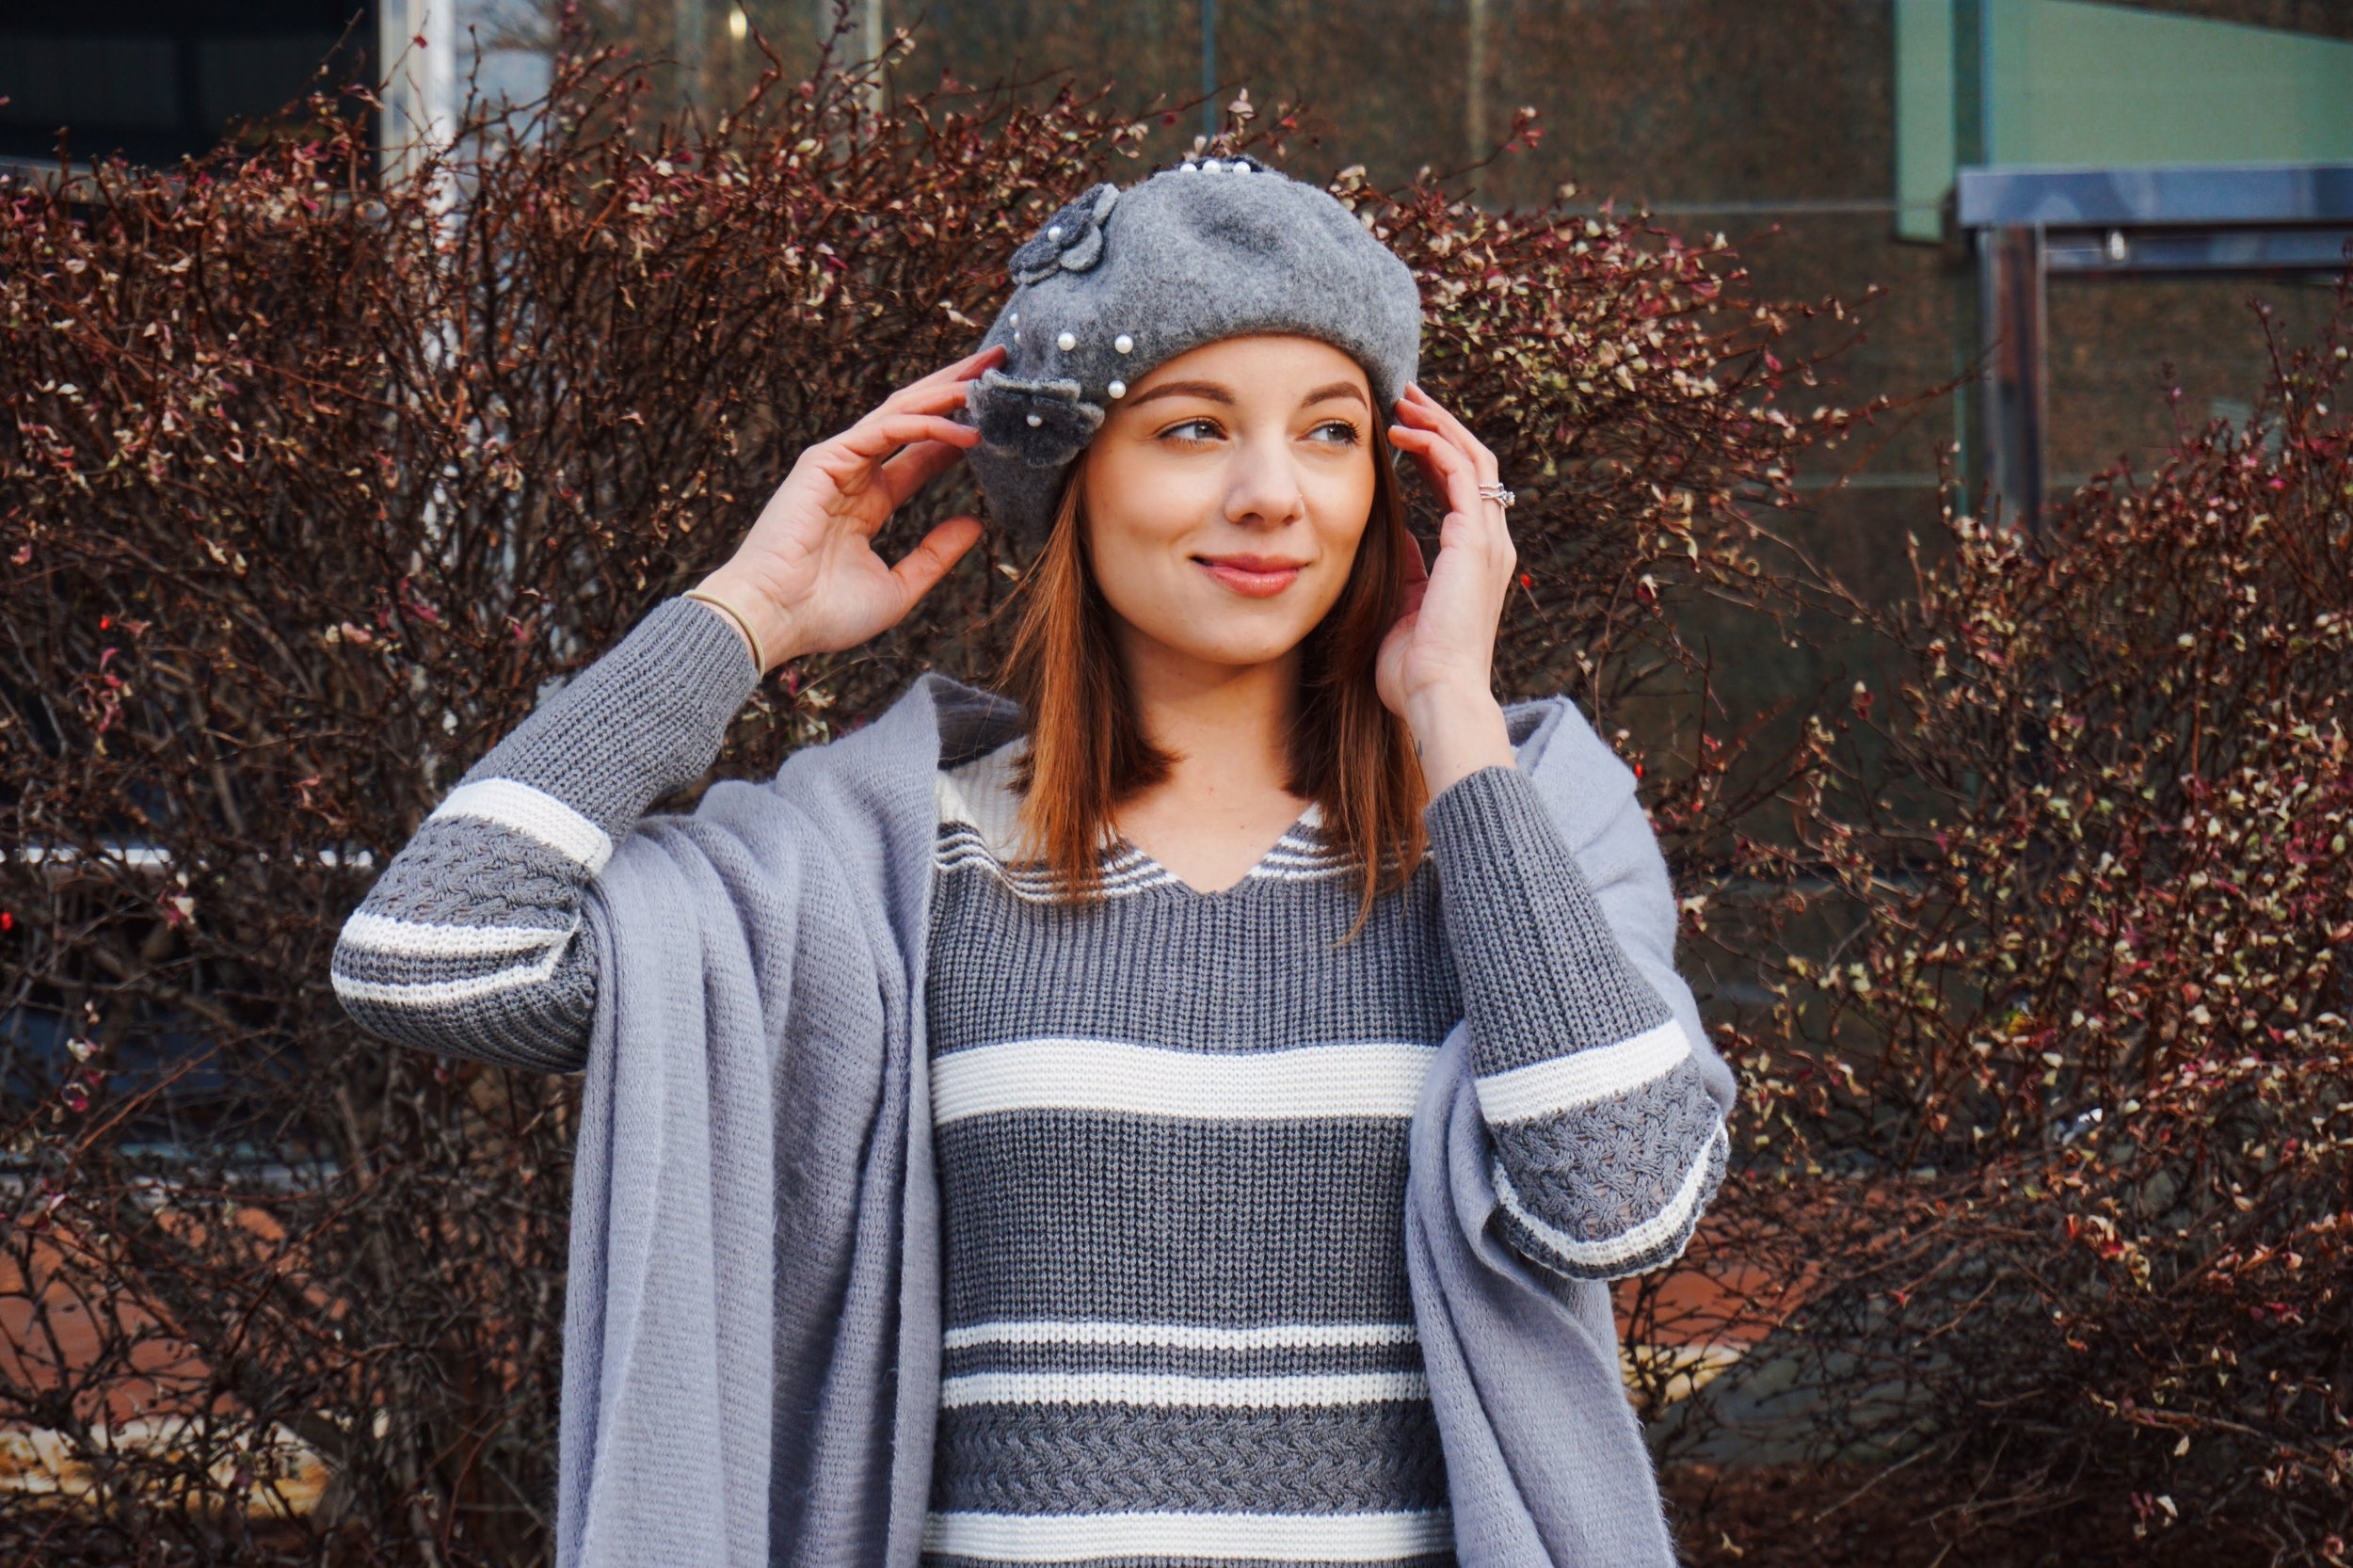 A portrait of a girl wearing a gray and white sweater, gray scarf, and gray beret.